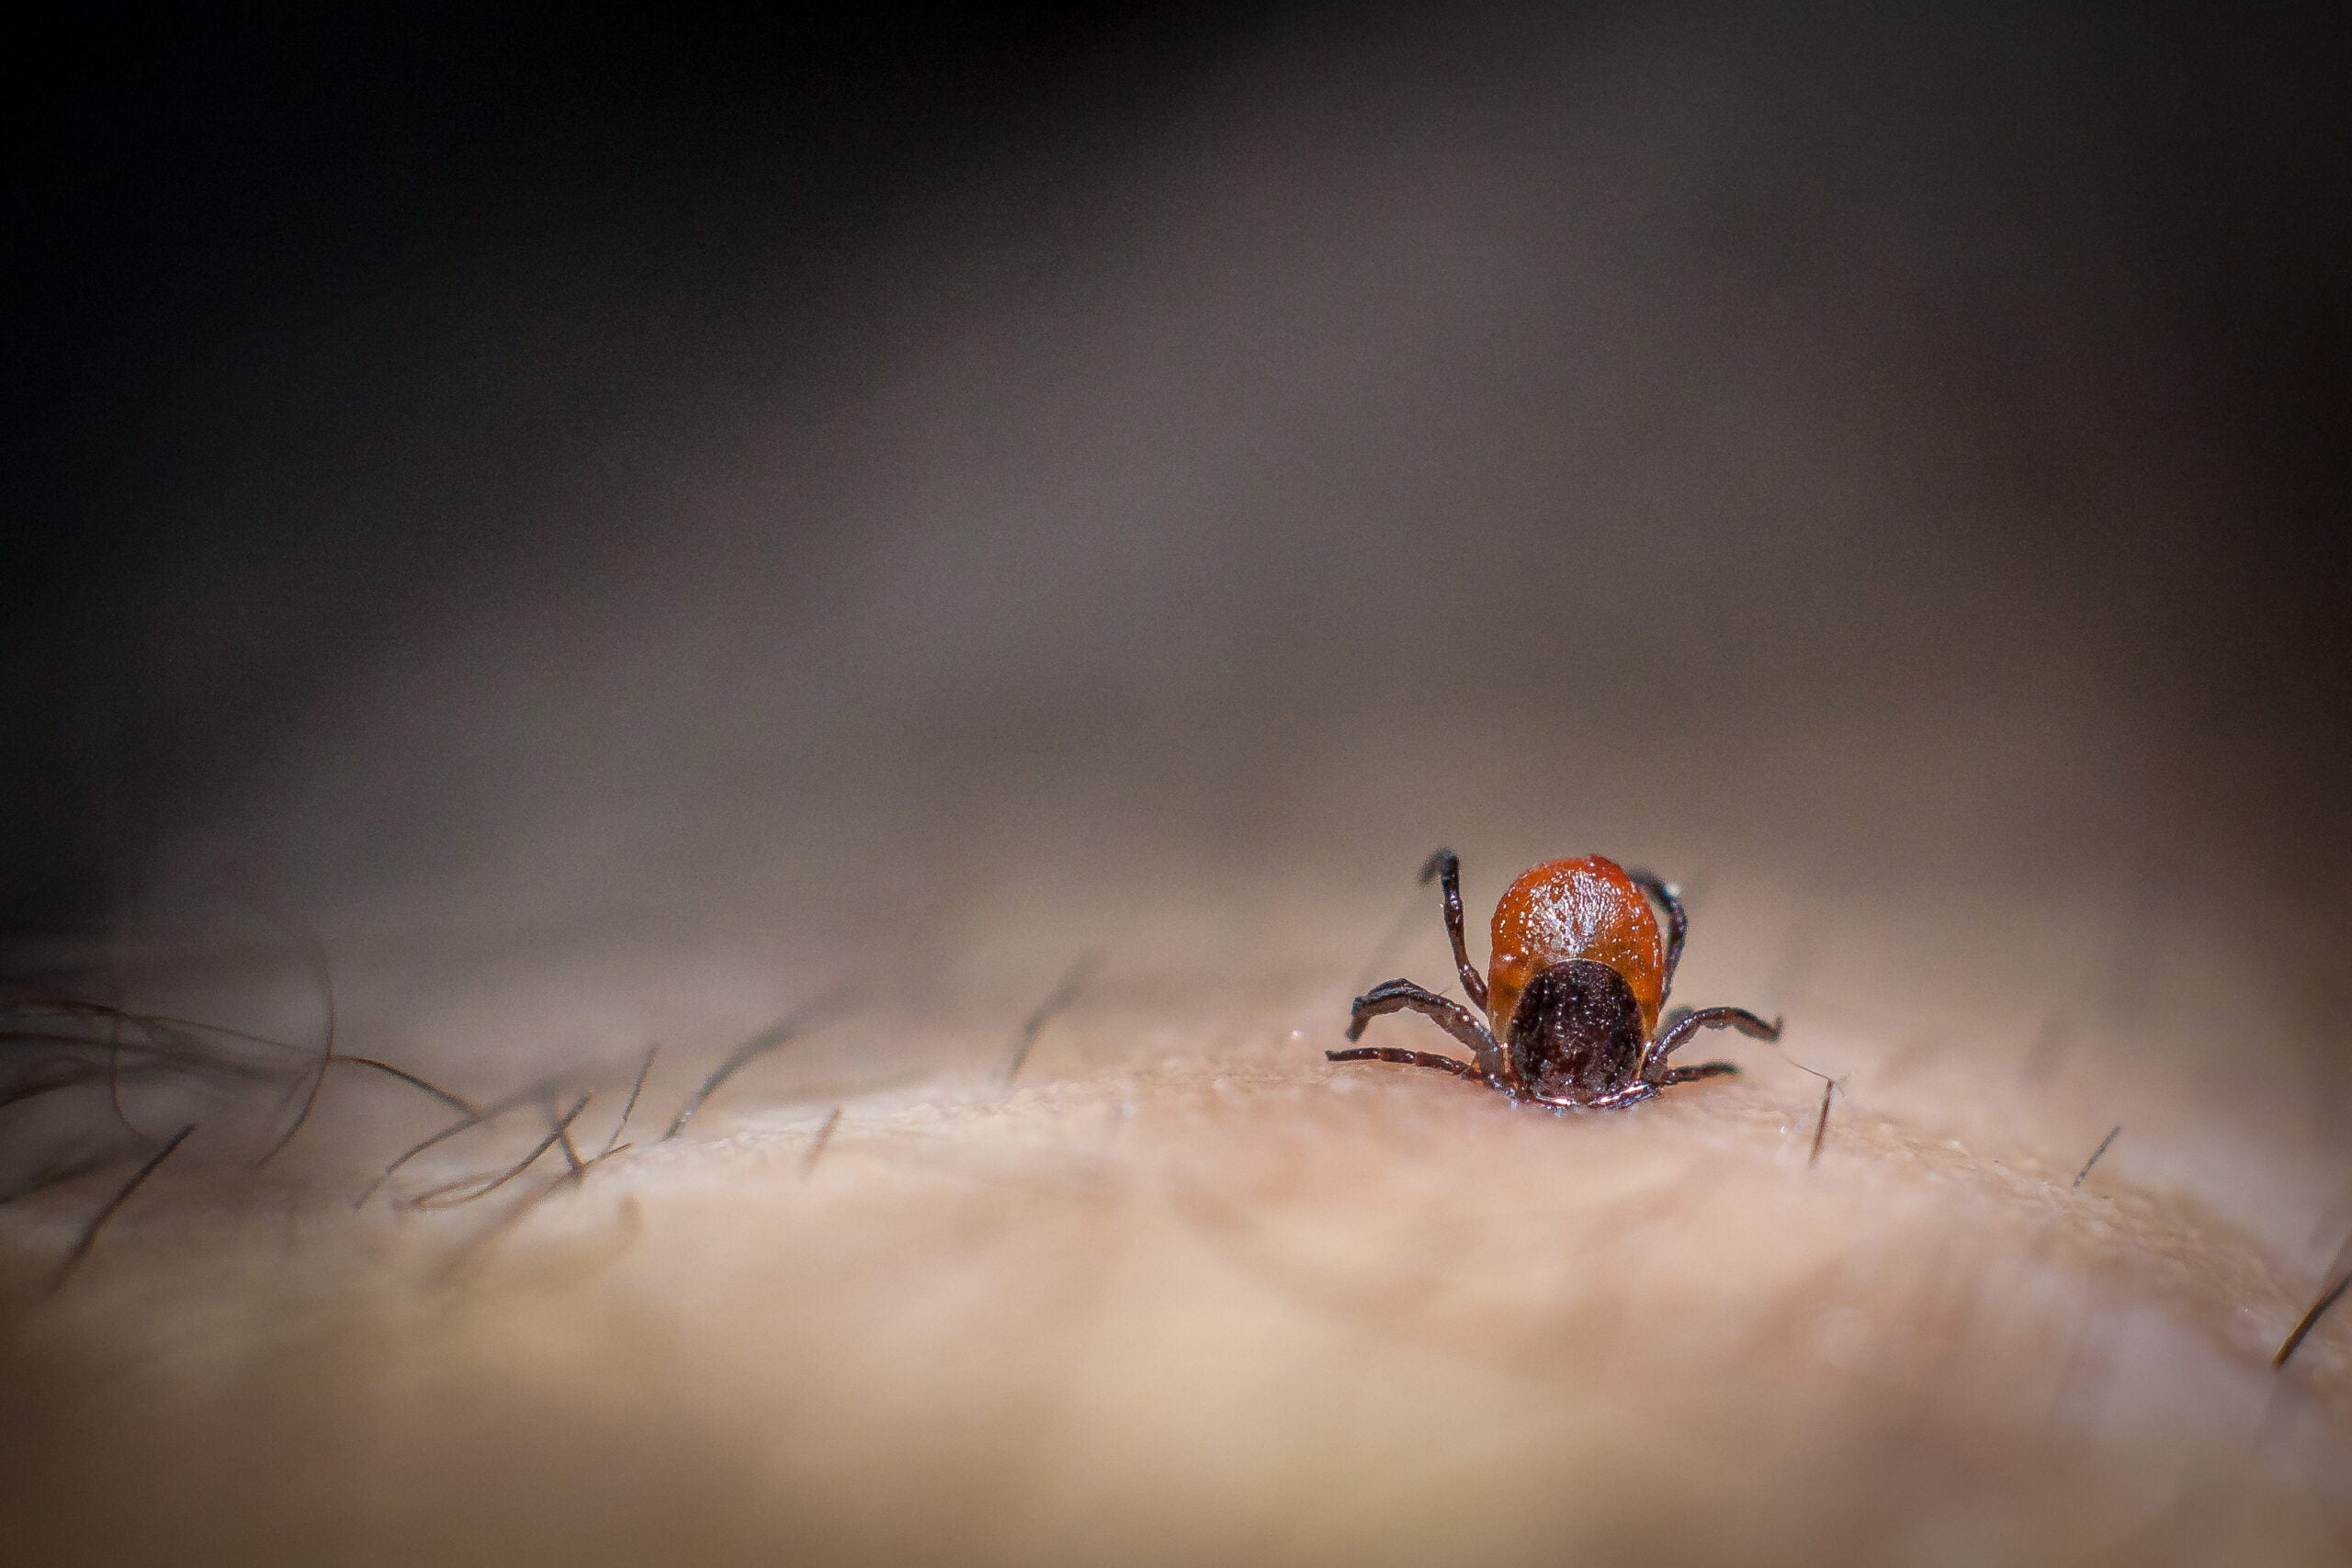 How Do You Know If You Have A Tickborne Illness?